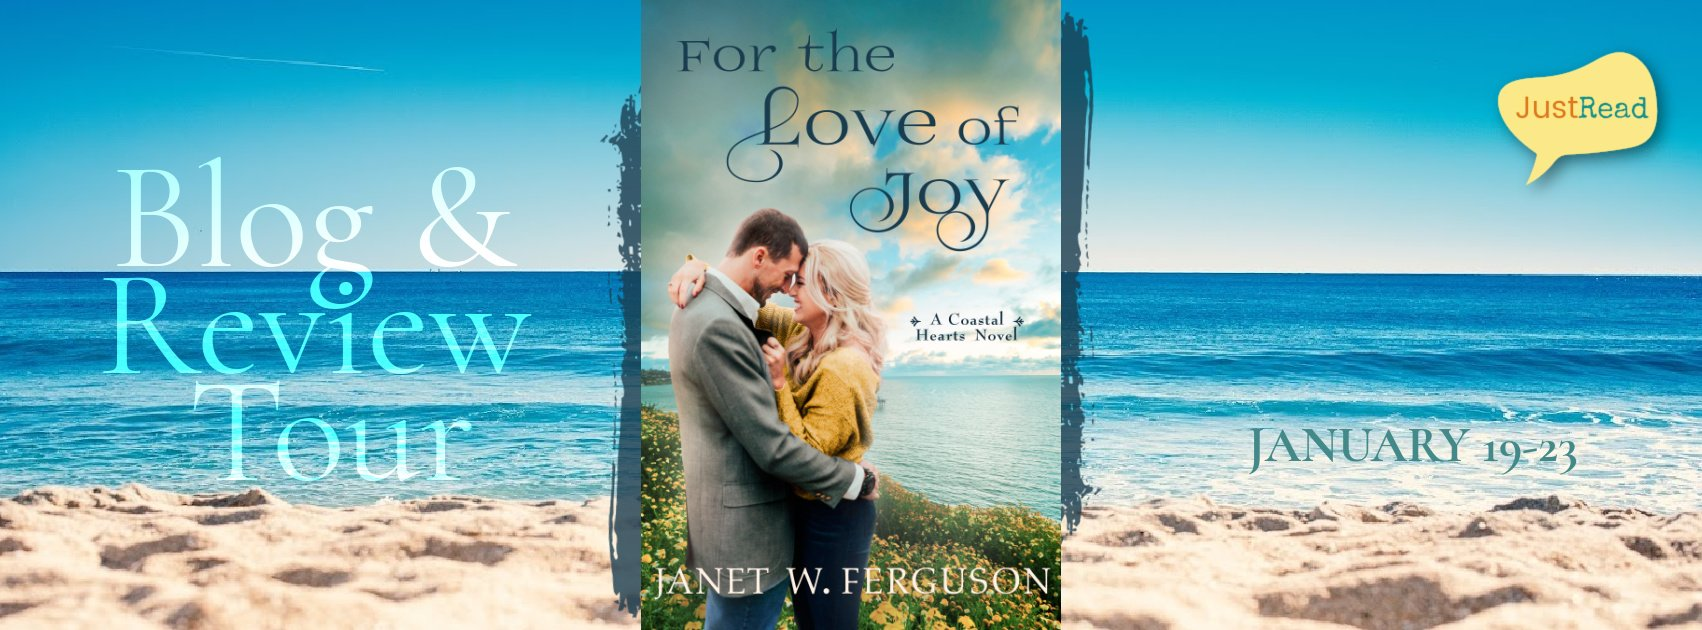 Welcome to the For the Love of Joy Blog + Review Tour & Giveaway!